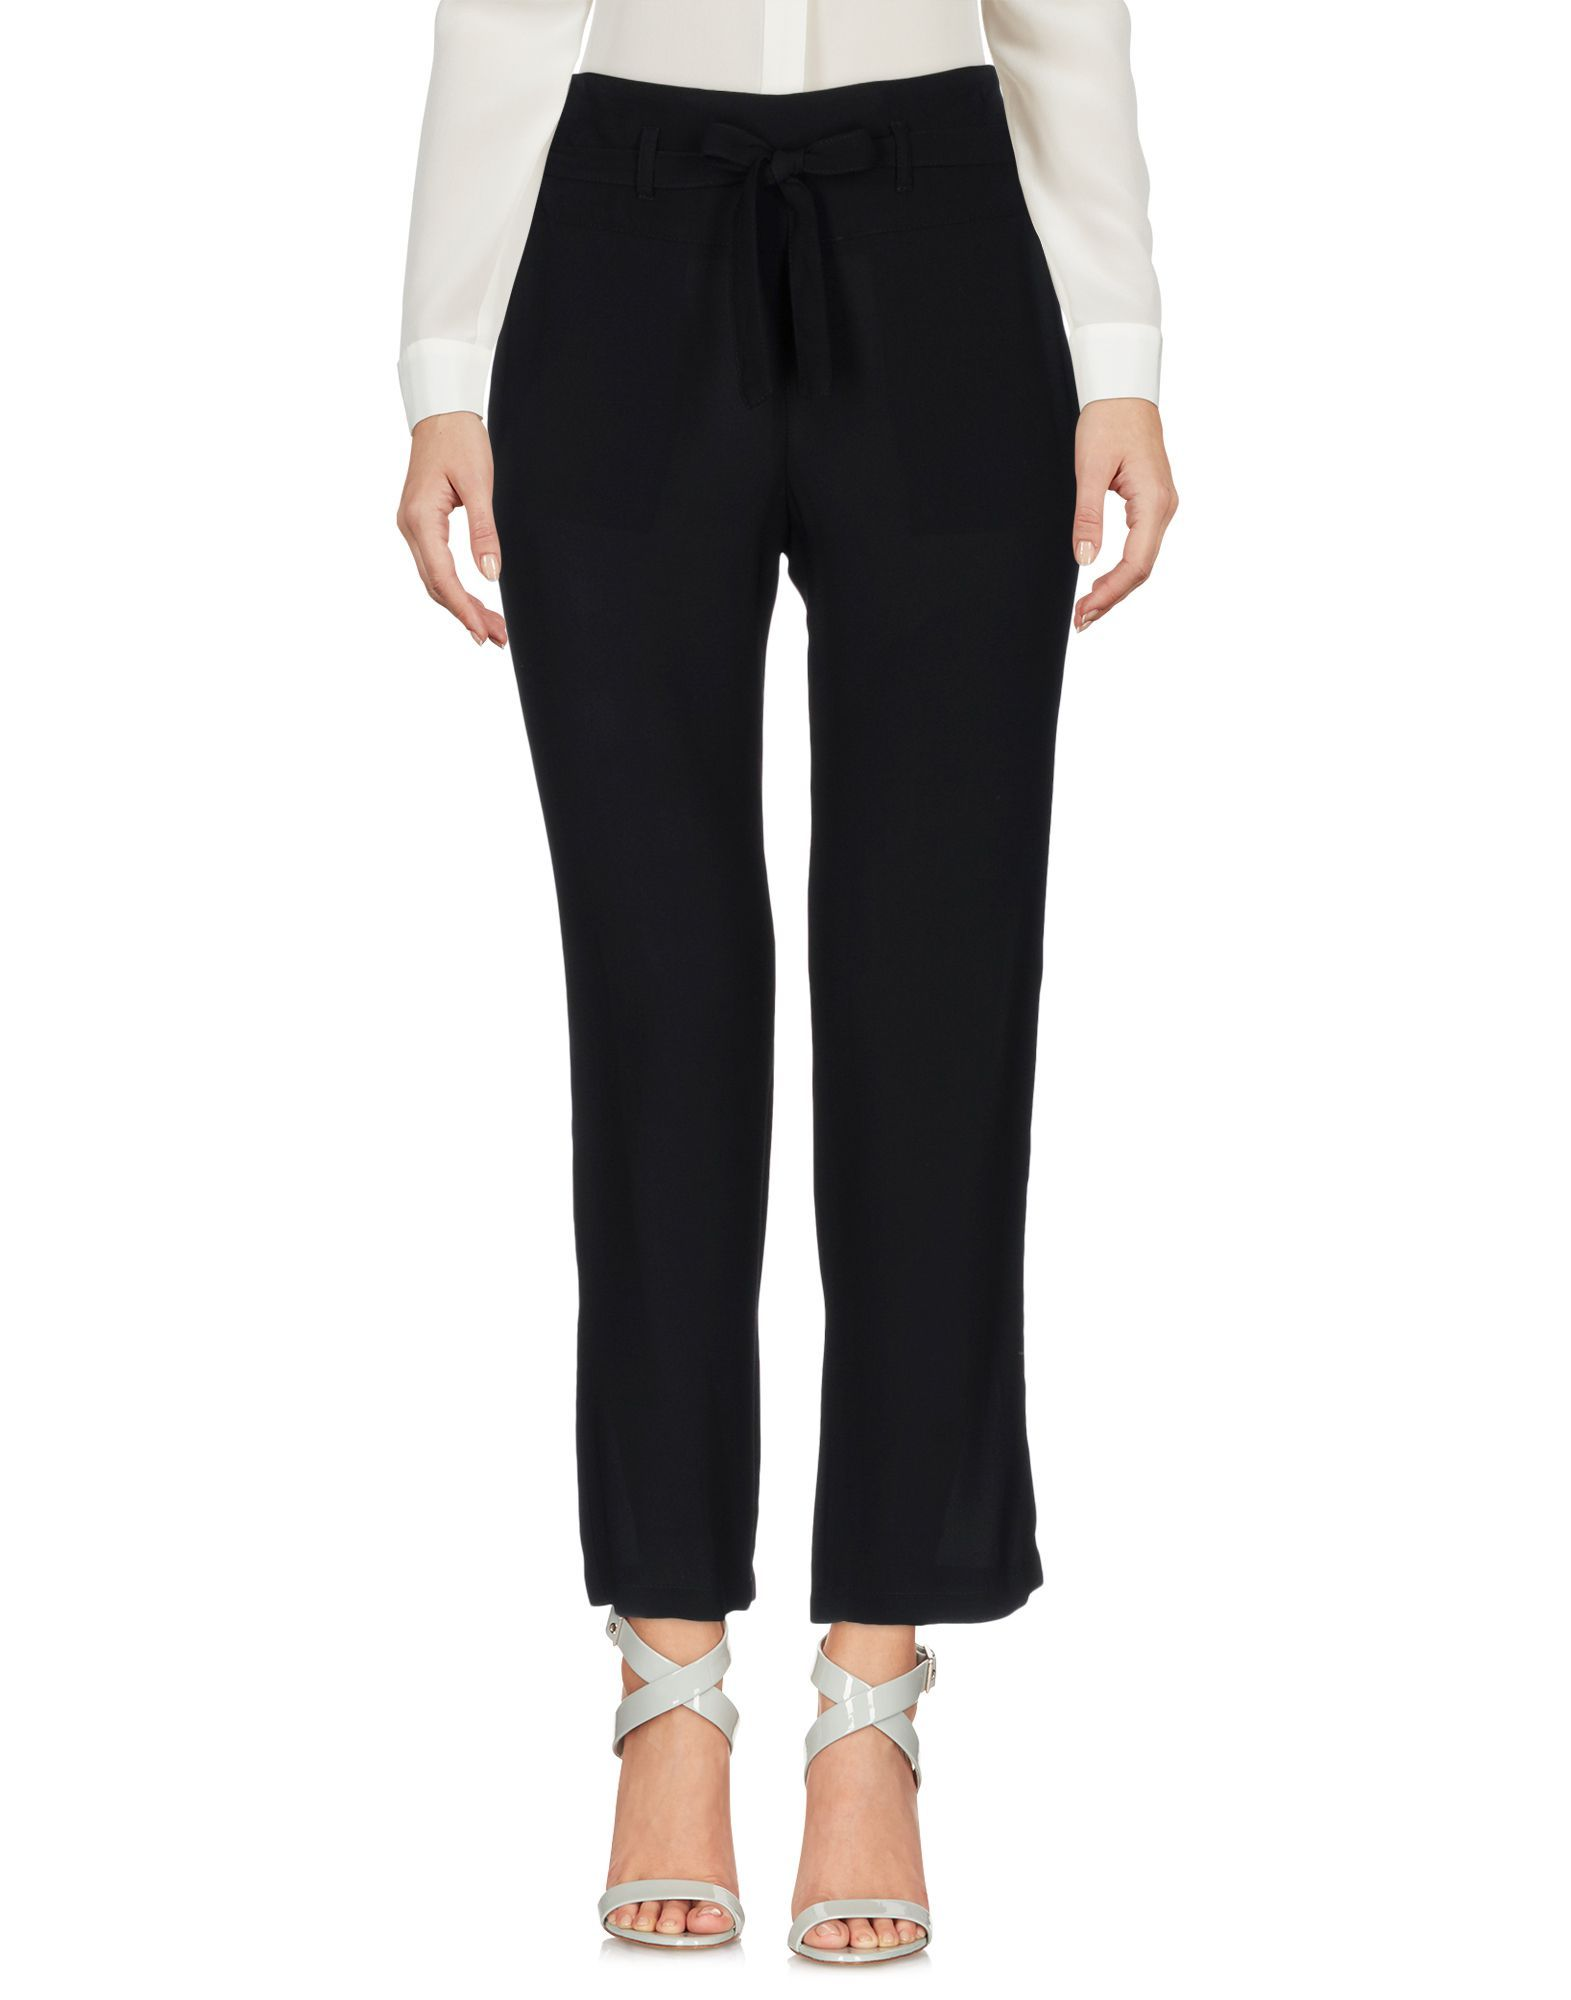 Atos Lombardini Black Crepe Tailored Trousers